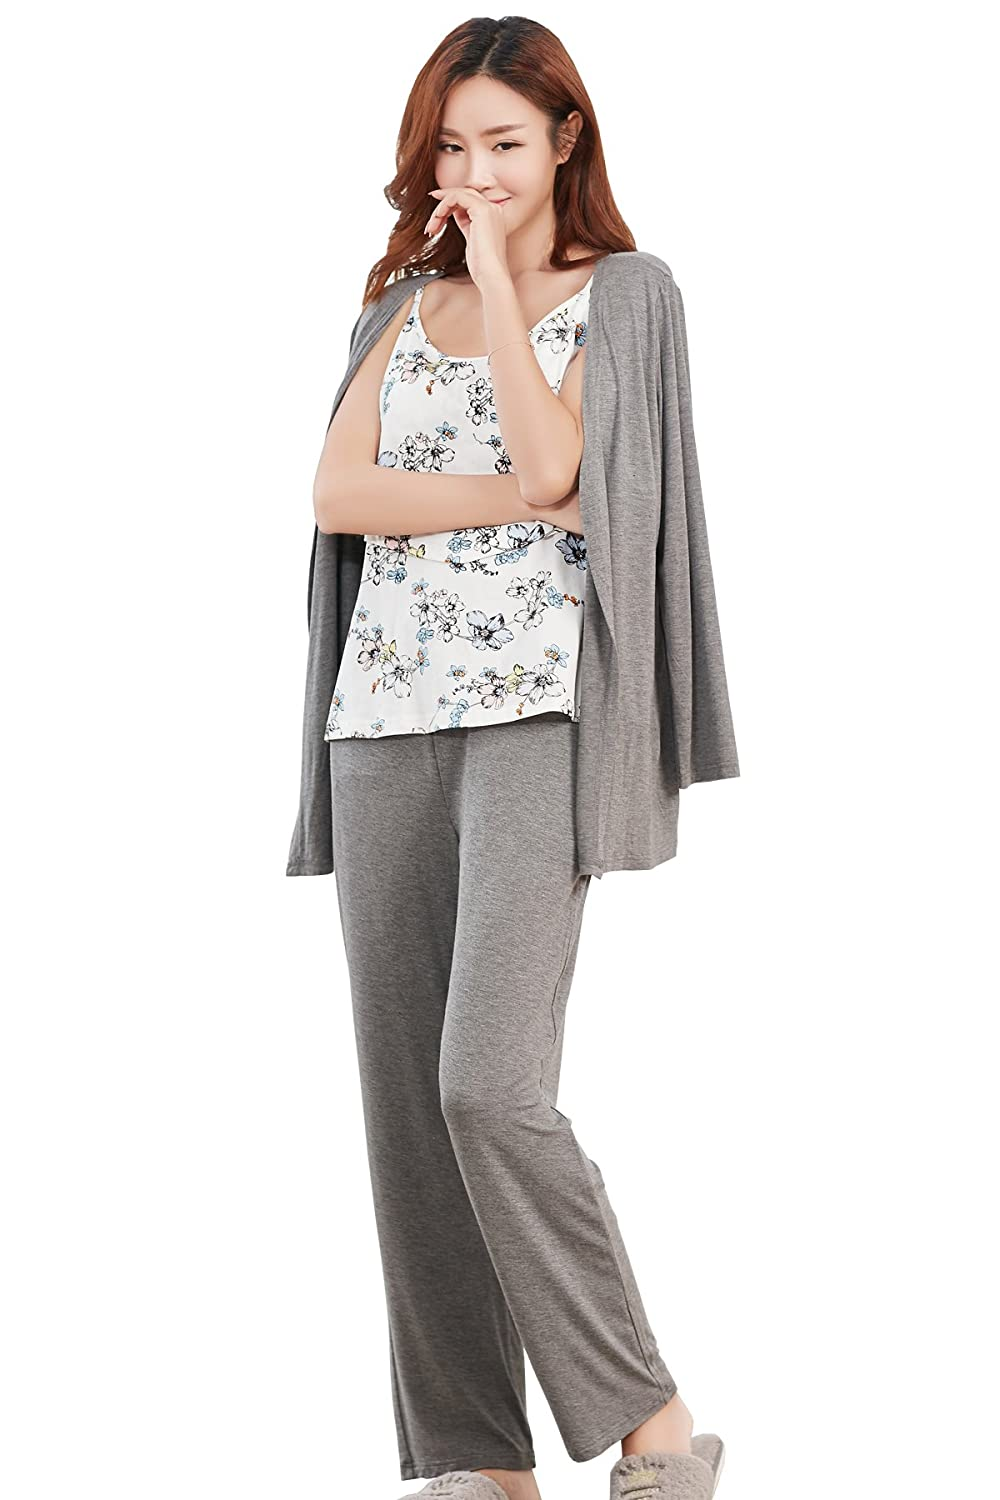 81a9650f50155 Epinmammy Women's 3 Piece Maternity and Nursing Pajama Set Nursing Top Pants  and Robe with Belt at Amazon Women's Clothing store: